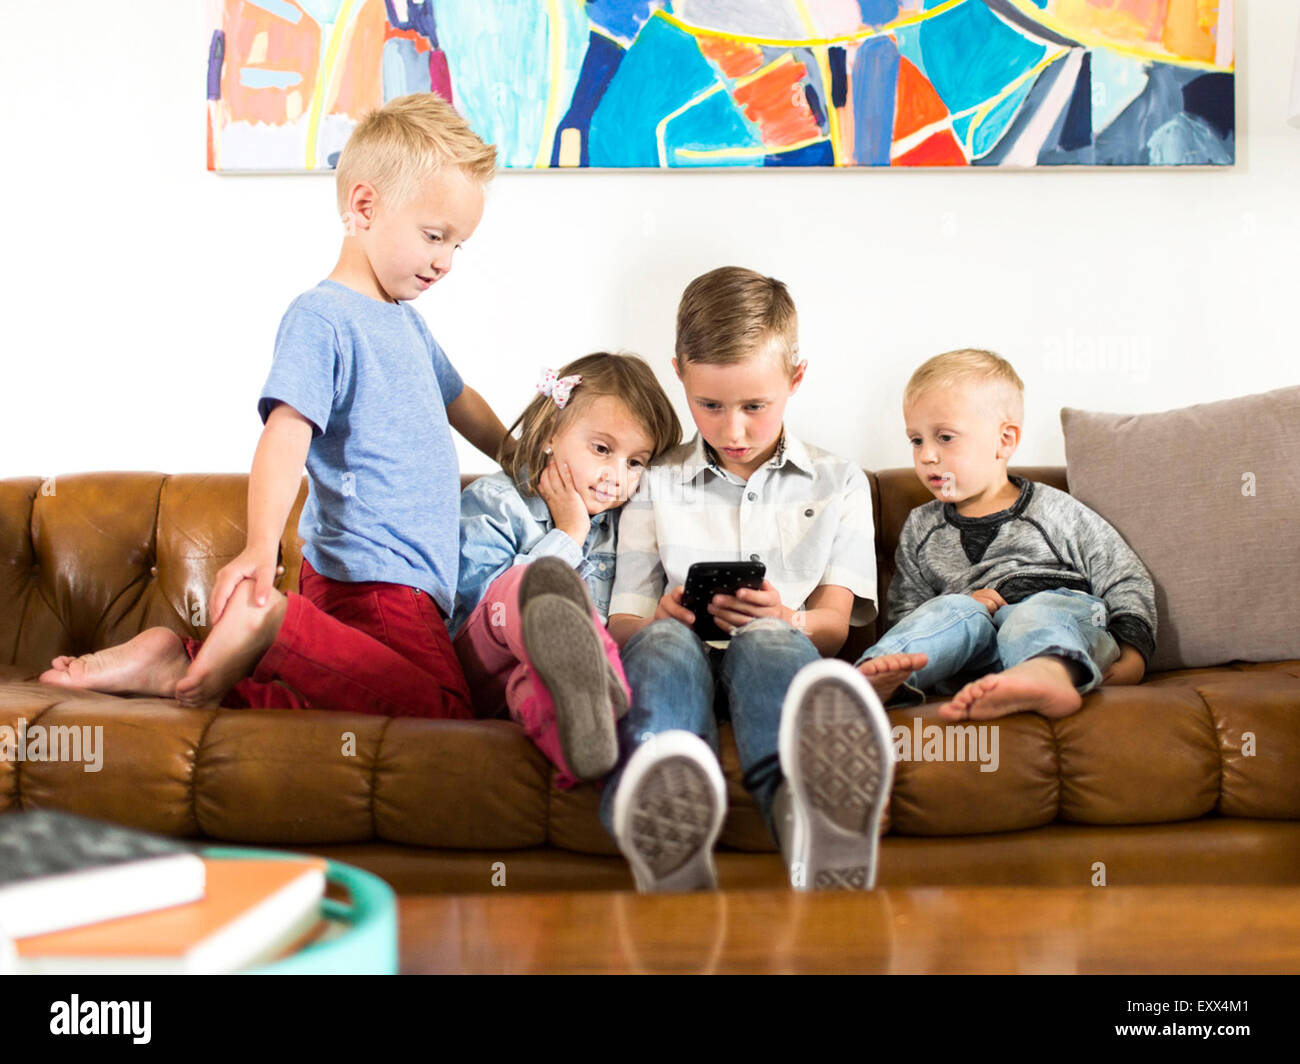 Children (2-3, 4-5, 6-7) sitting on sofa and using smartphone - Stock Image